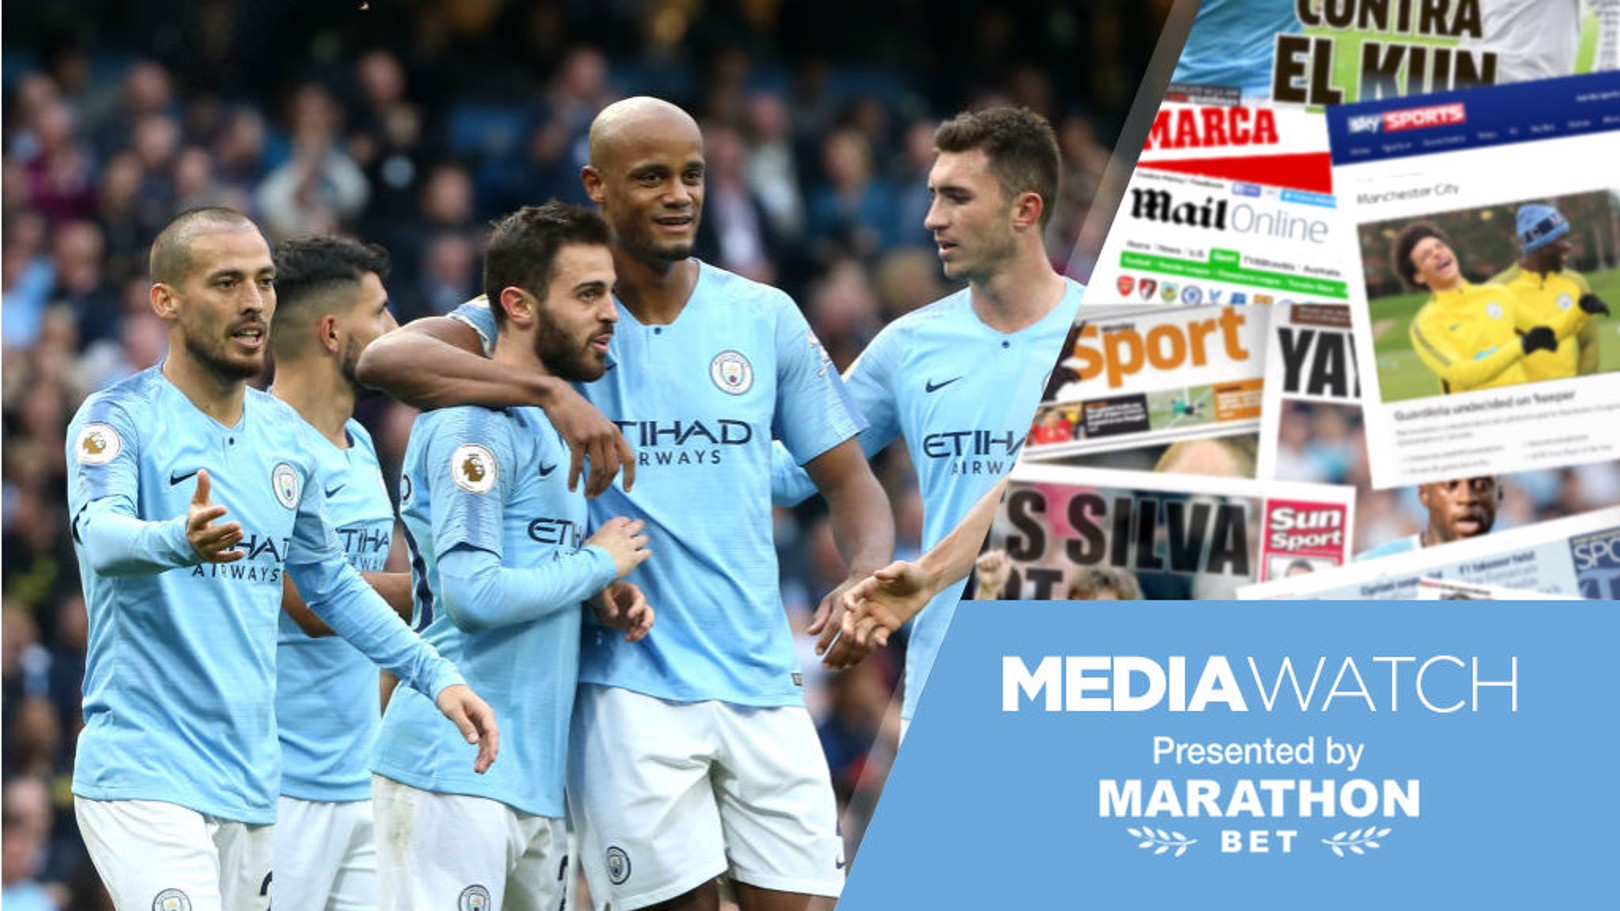 Media Watch: 'City can become new Invincibles'